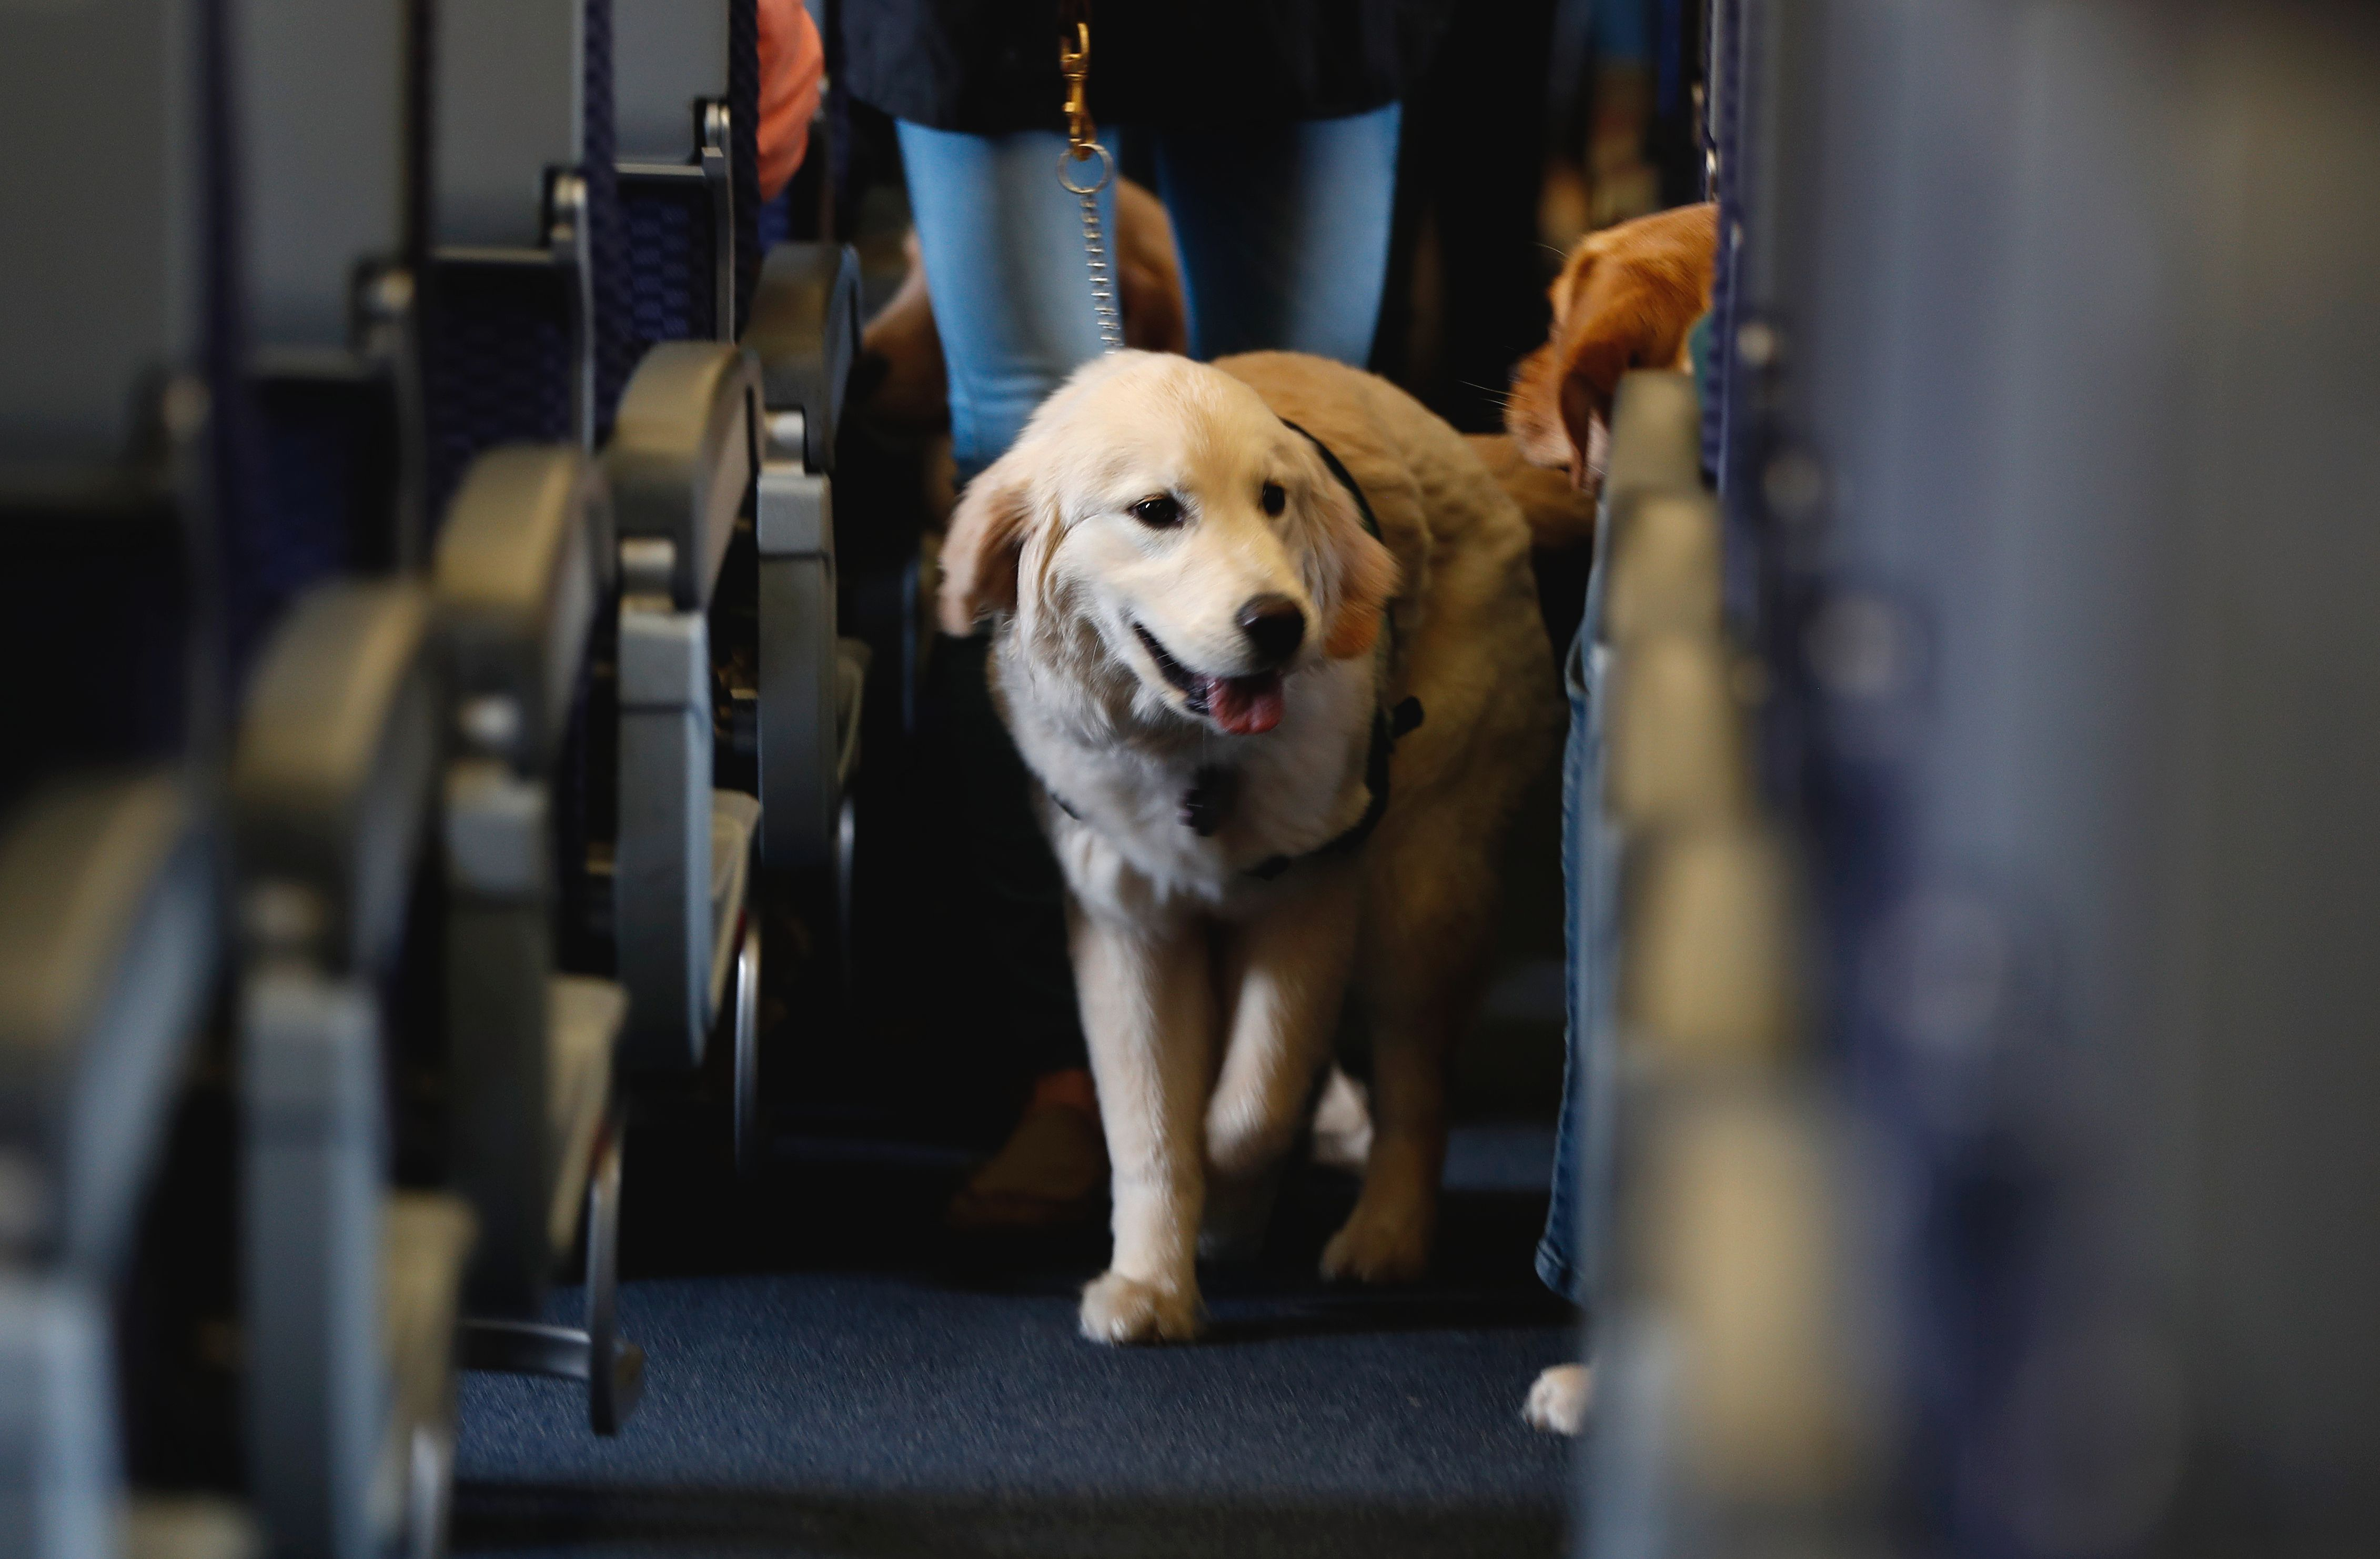 Dozens of dogs fill Newark airport terminal (With images